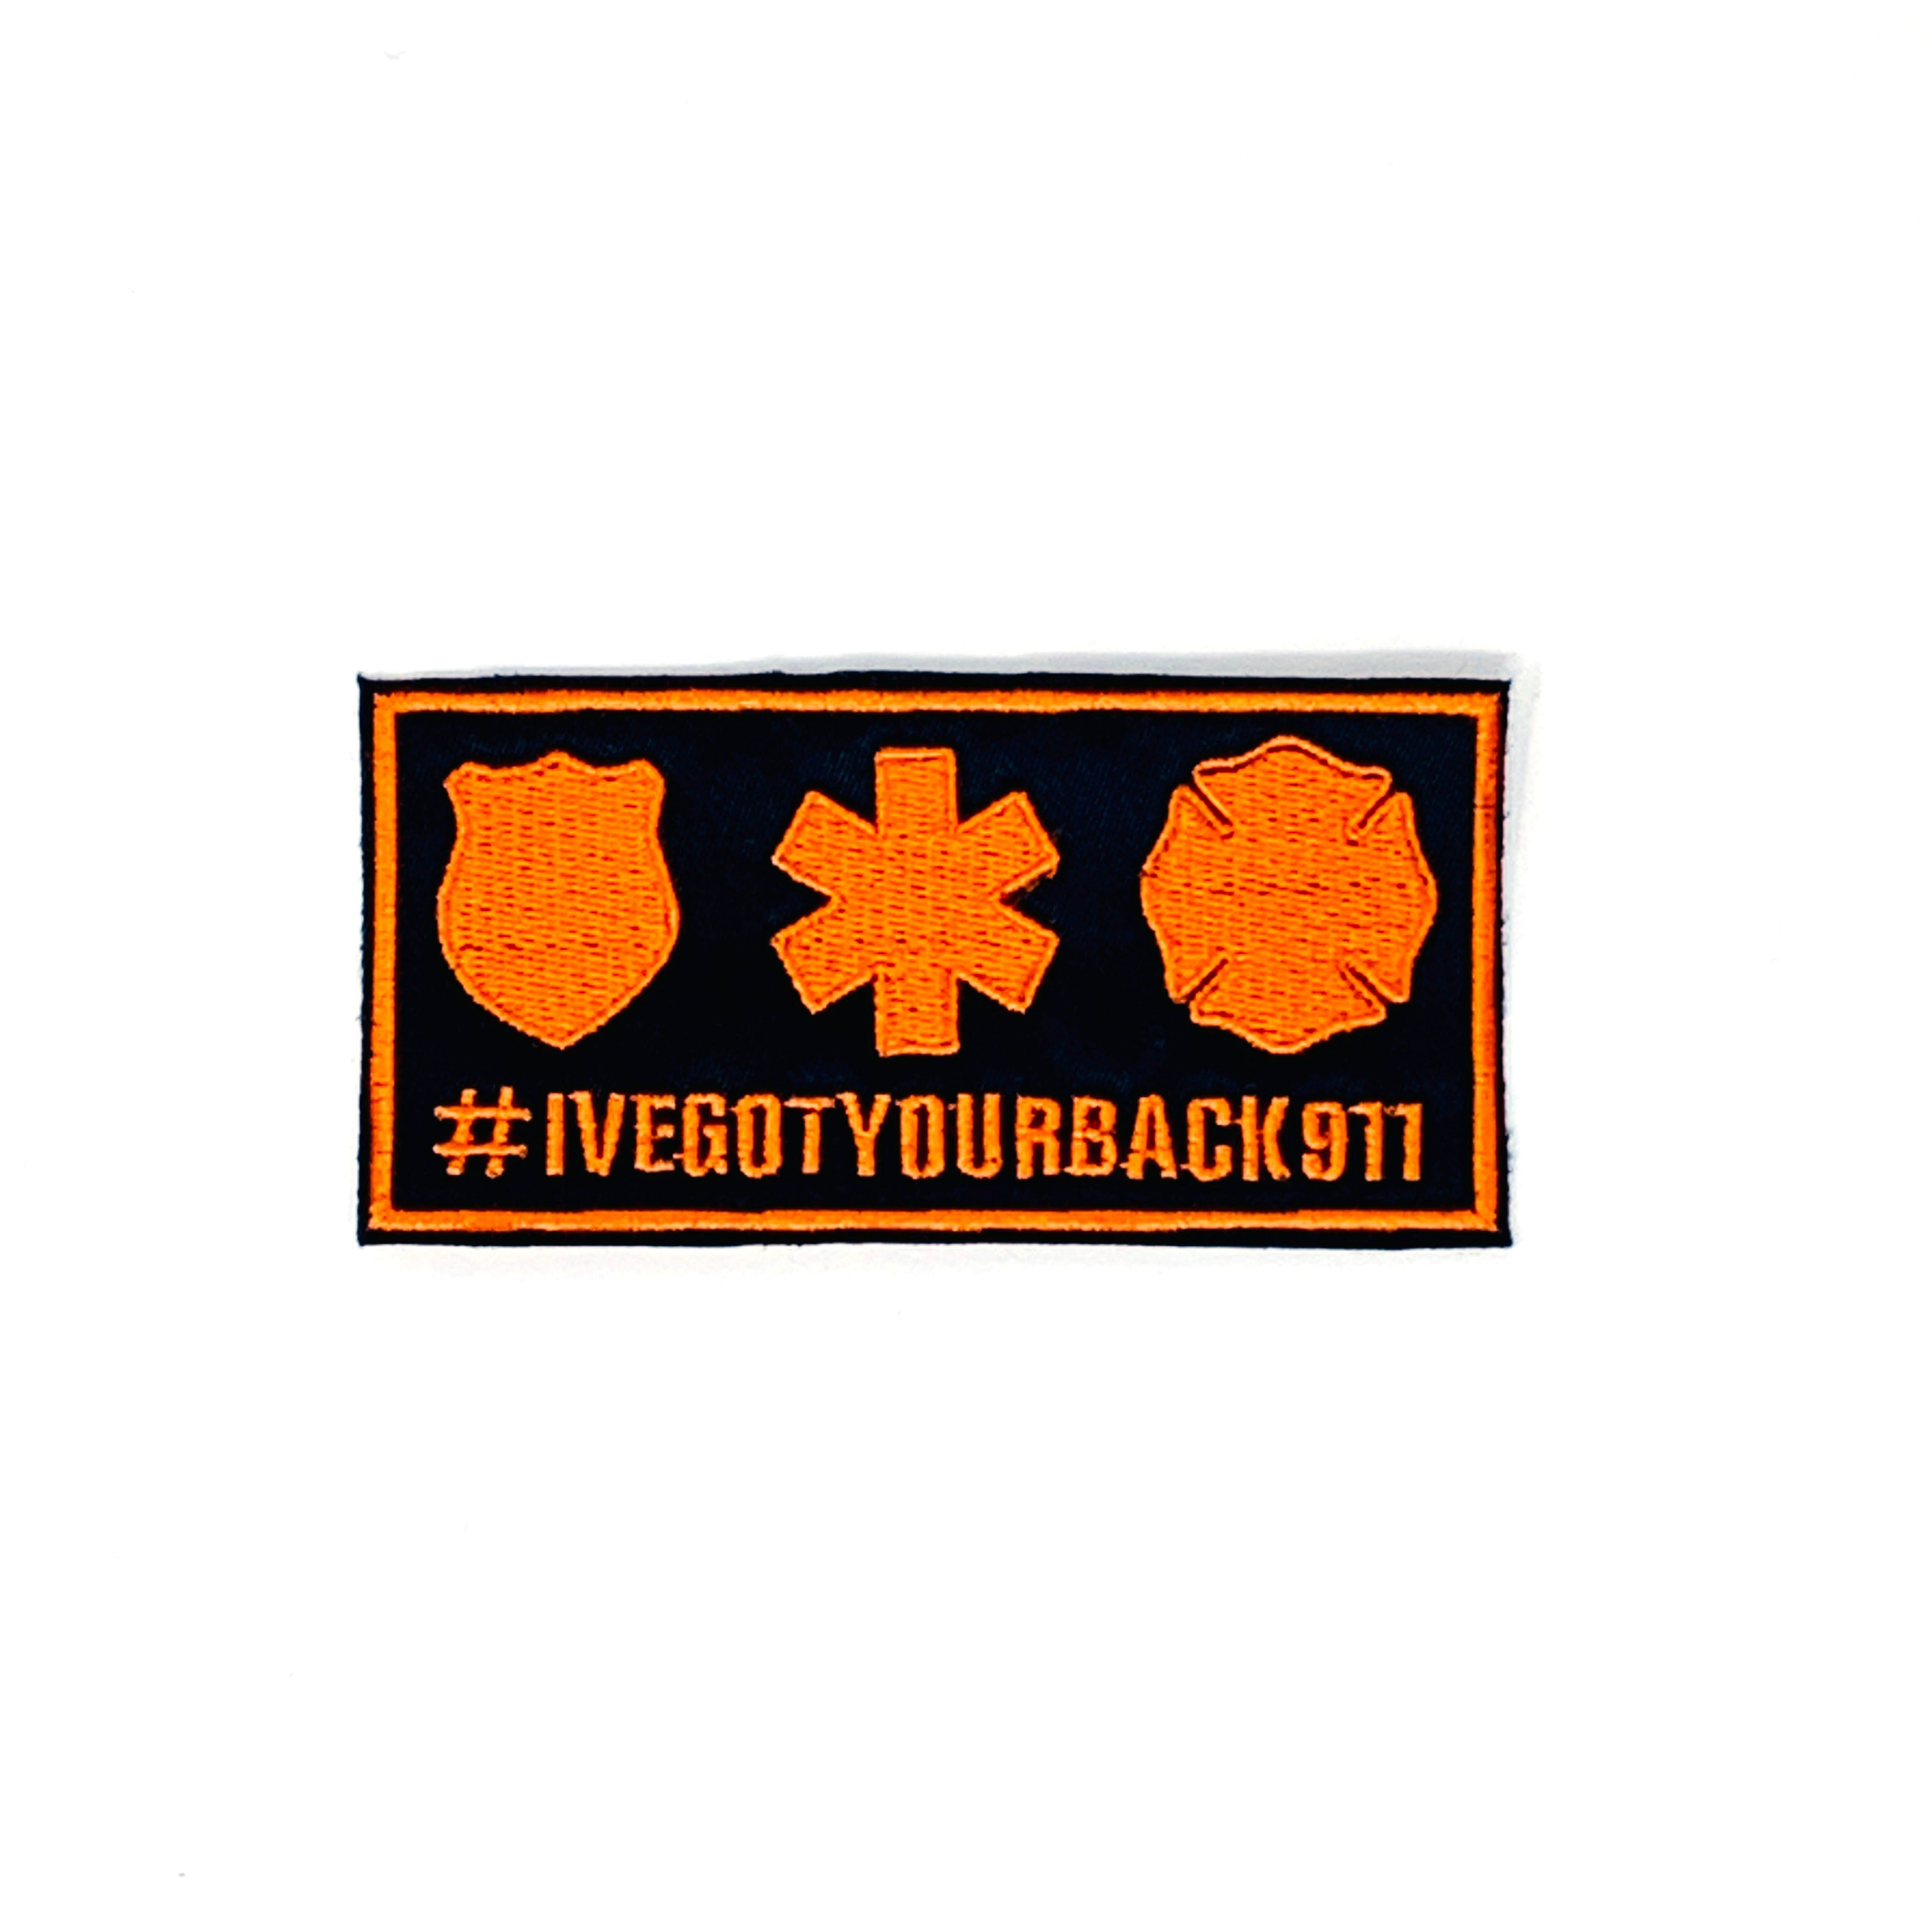 #IVEGOTYOURBACK911 Patch - Sew On